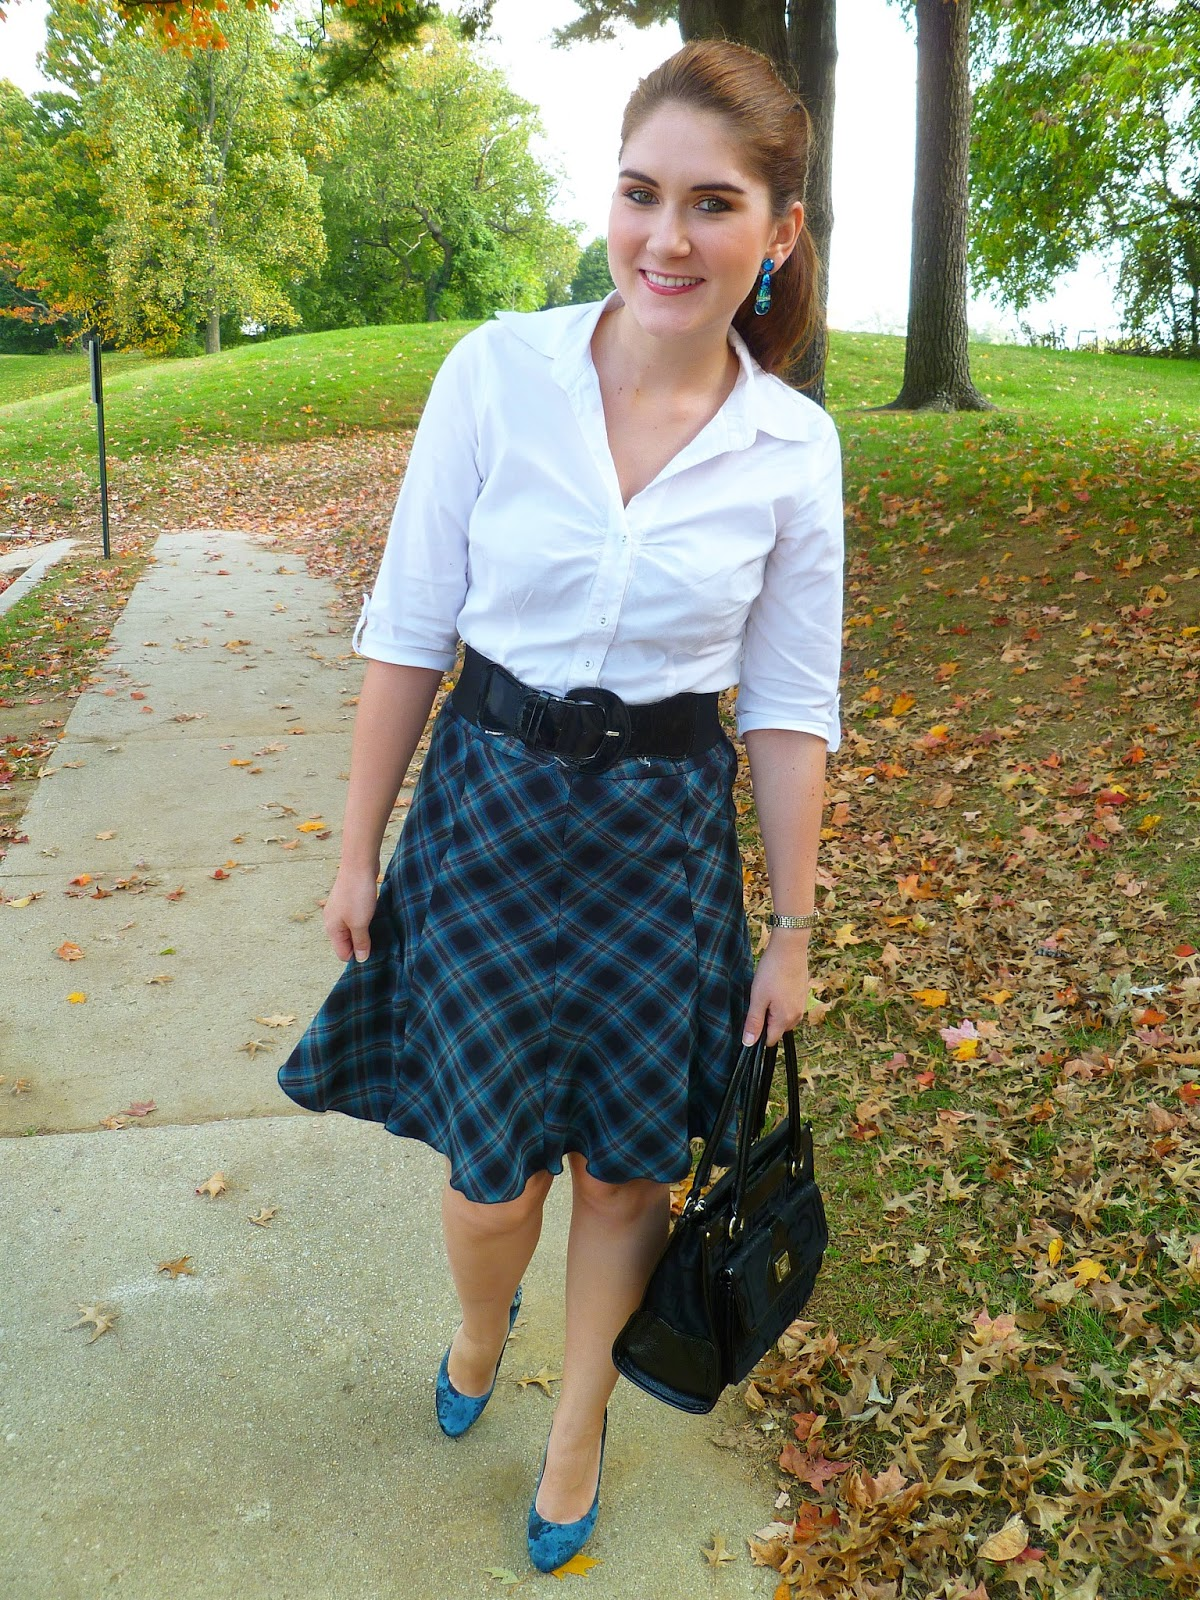 Skirt Outfit Ideas